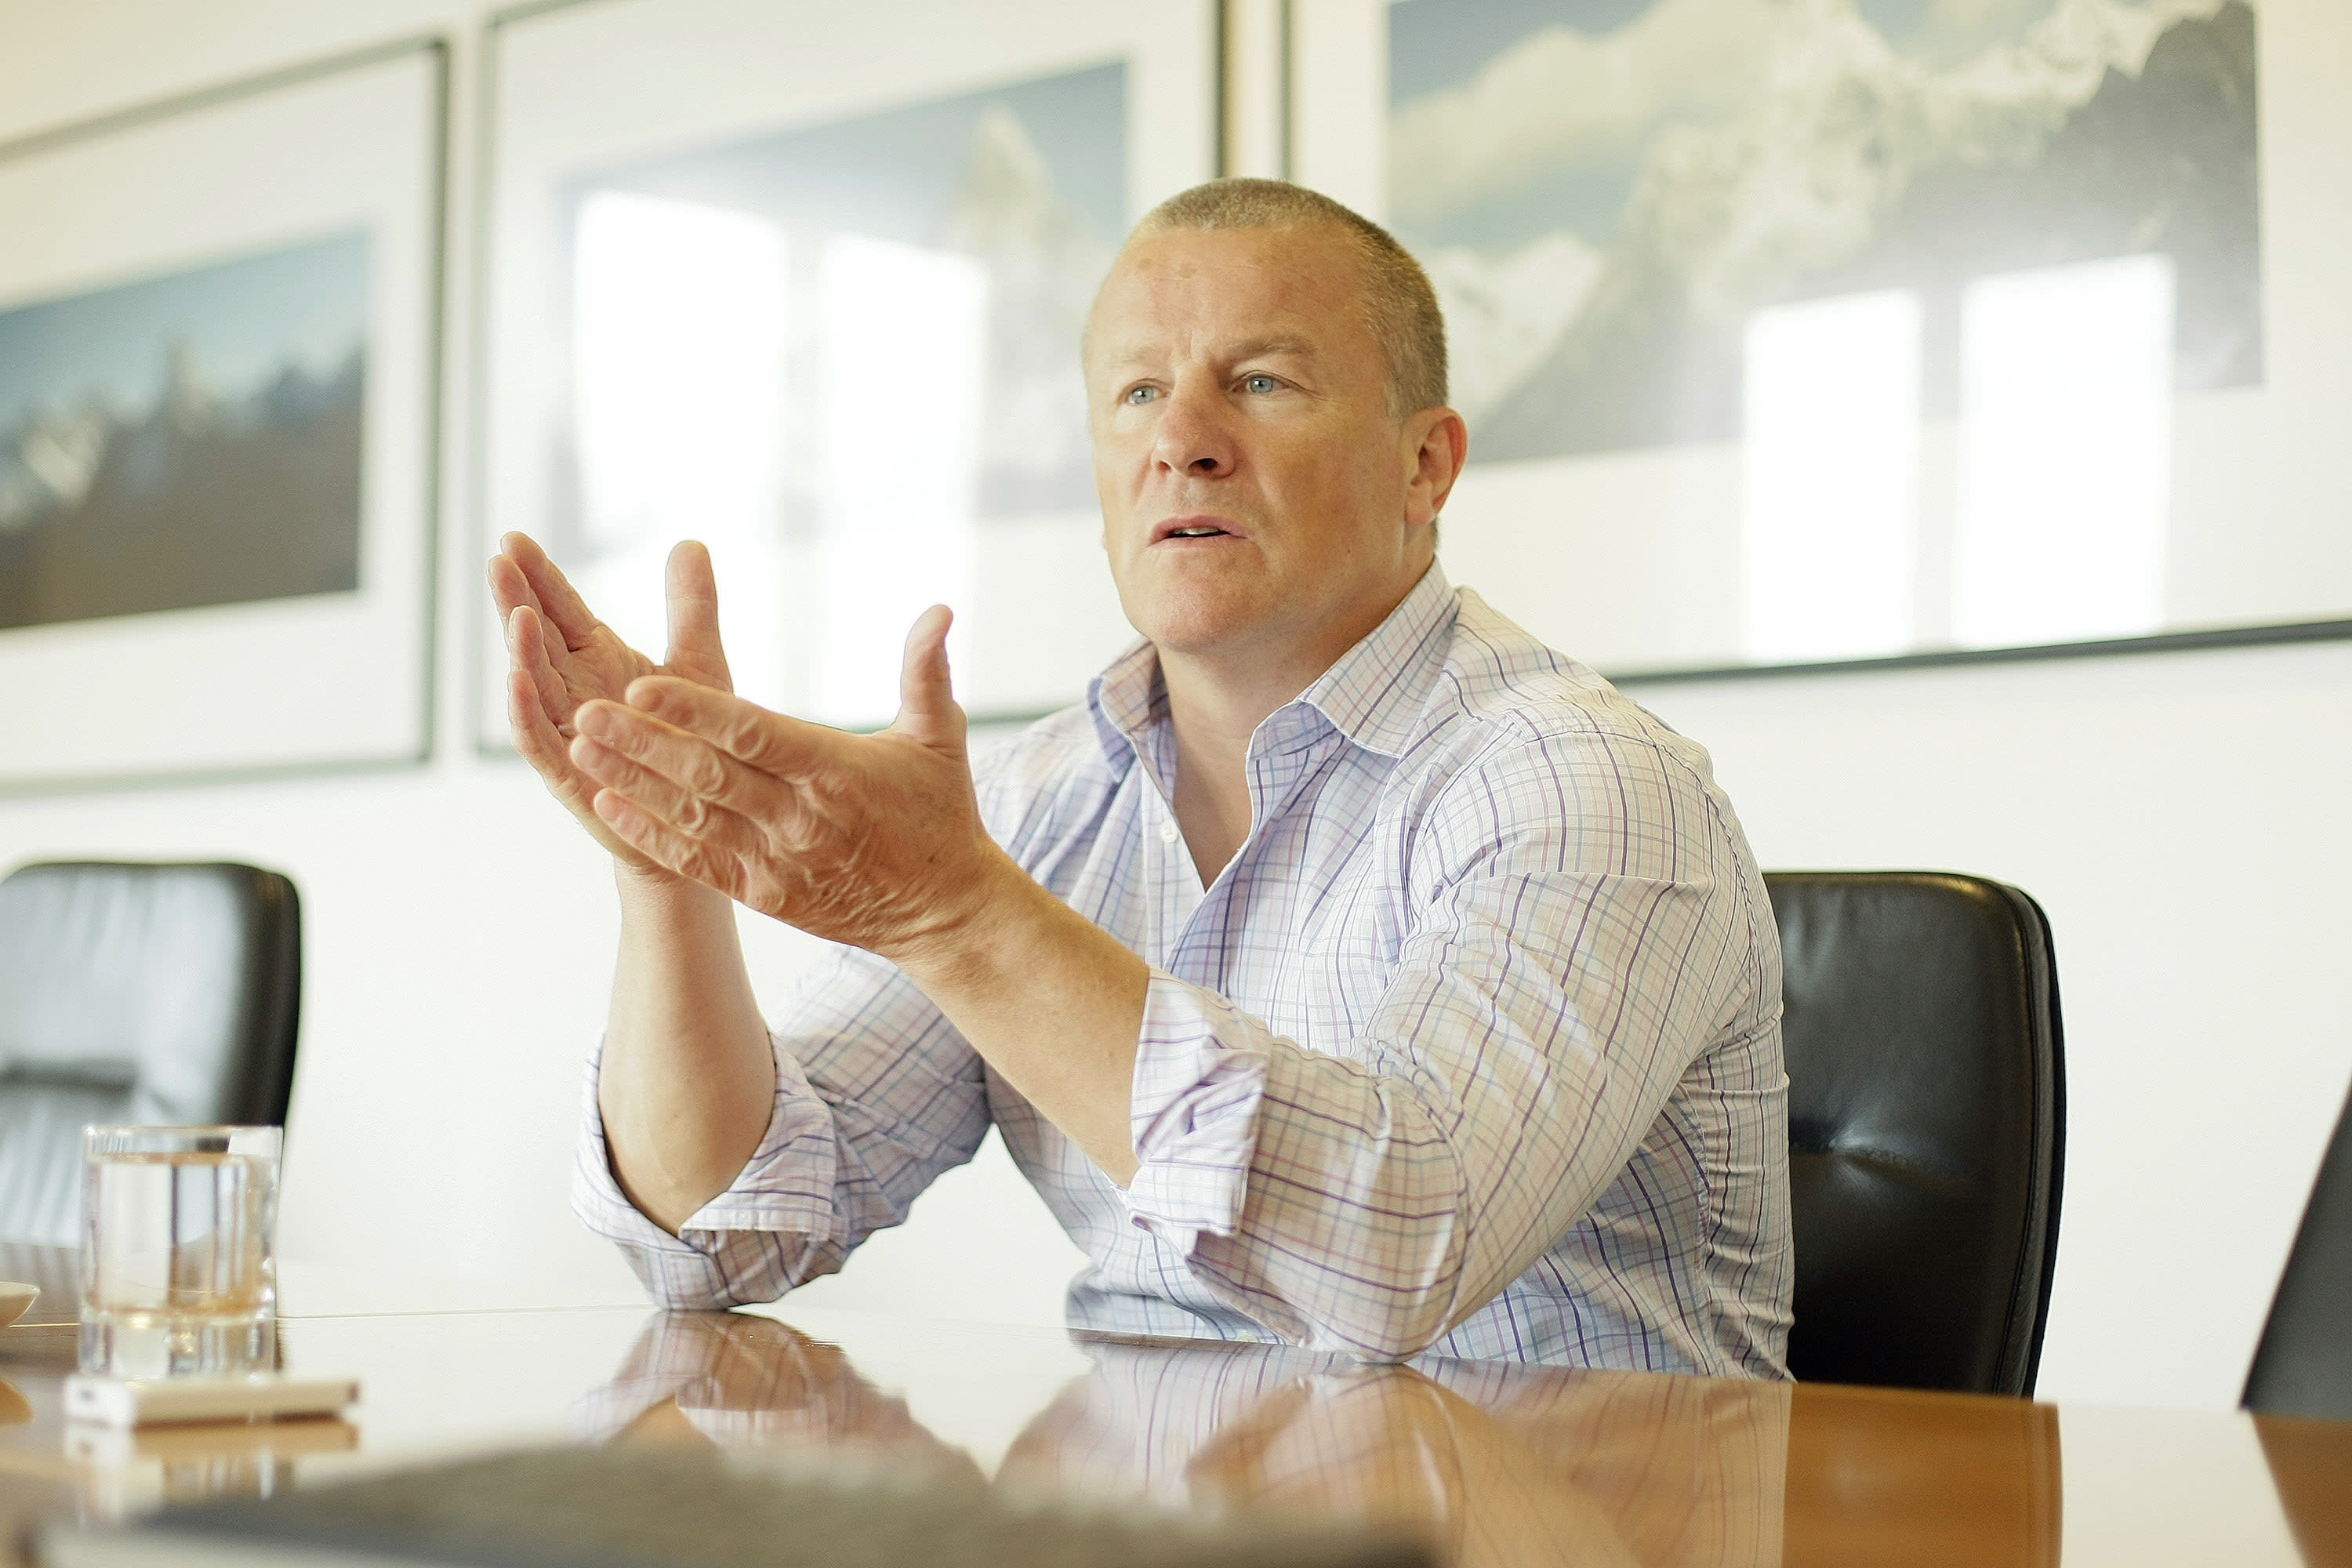 Woodford suspends dealing on Equity Income fund